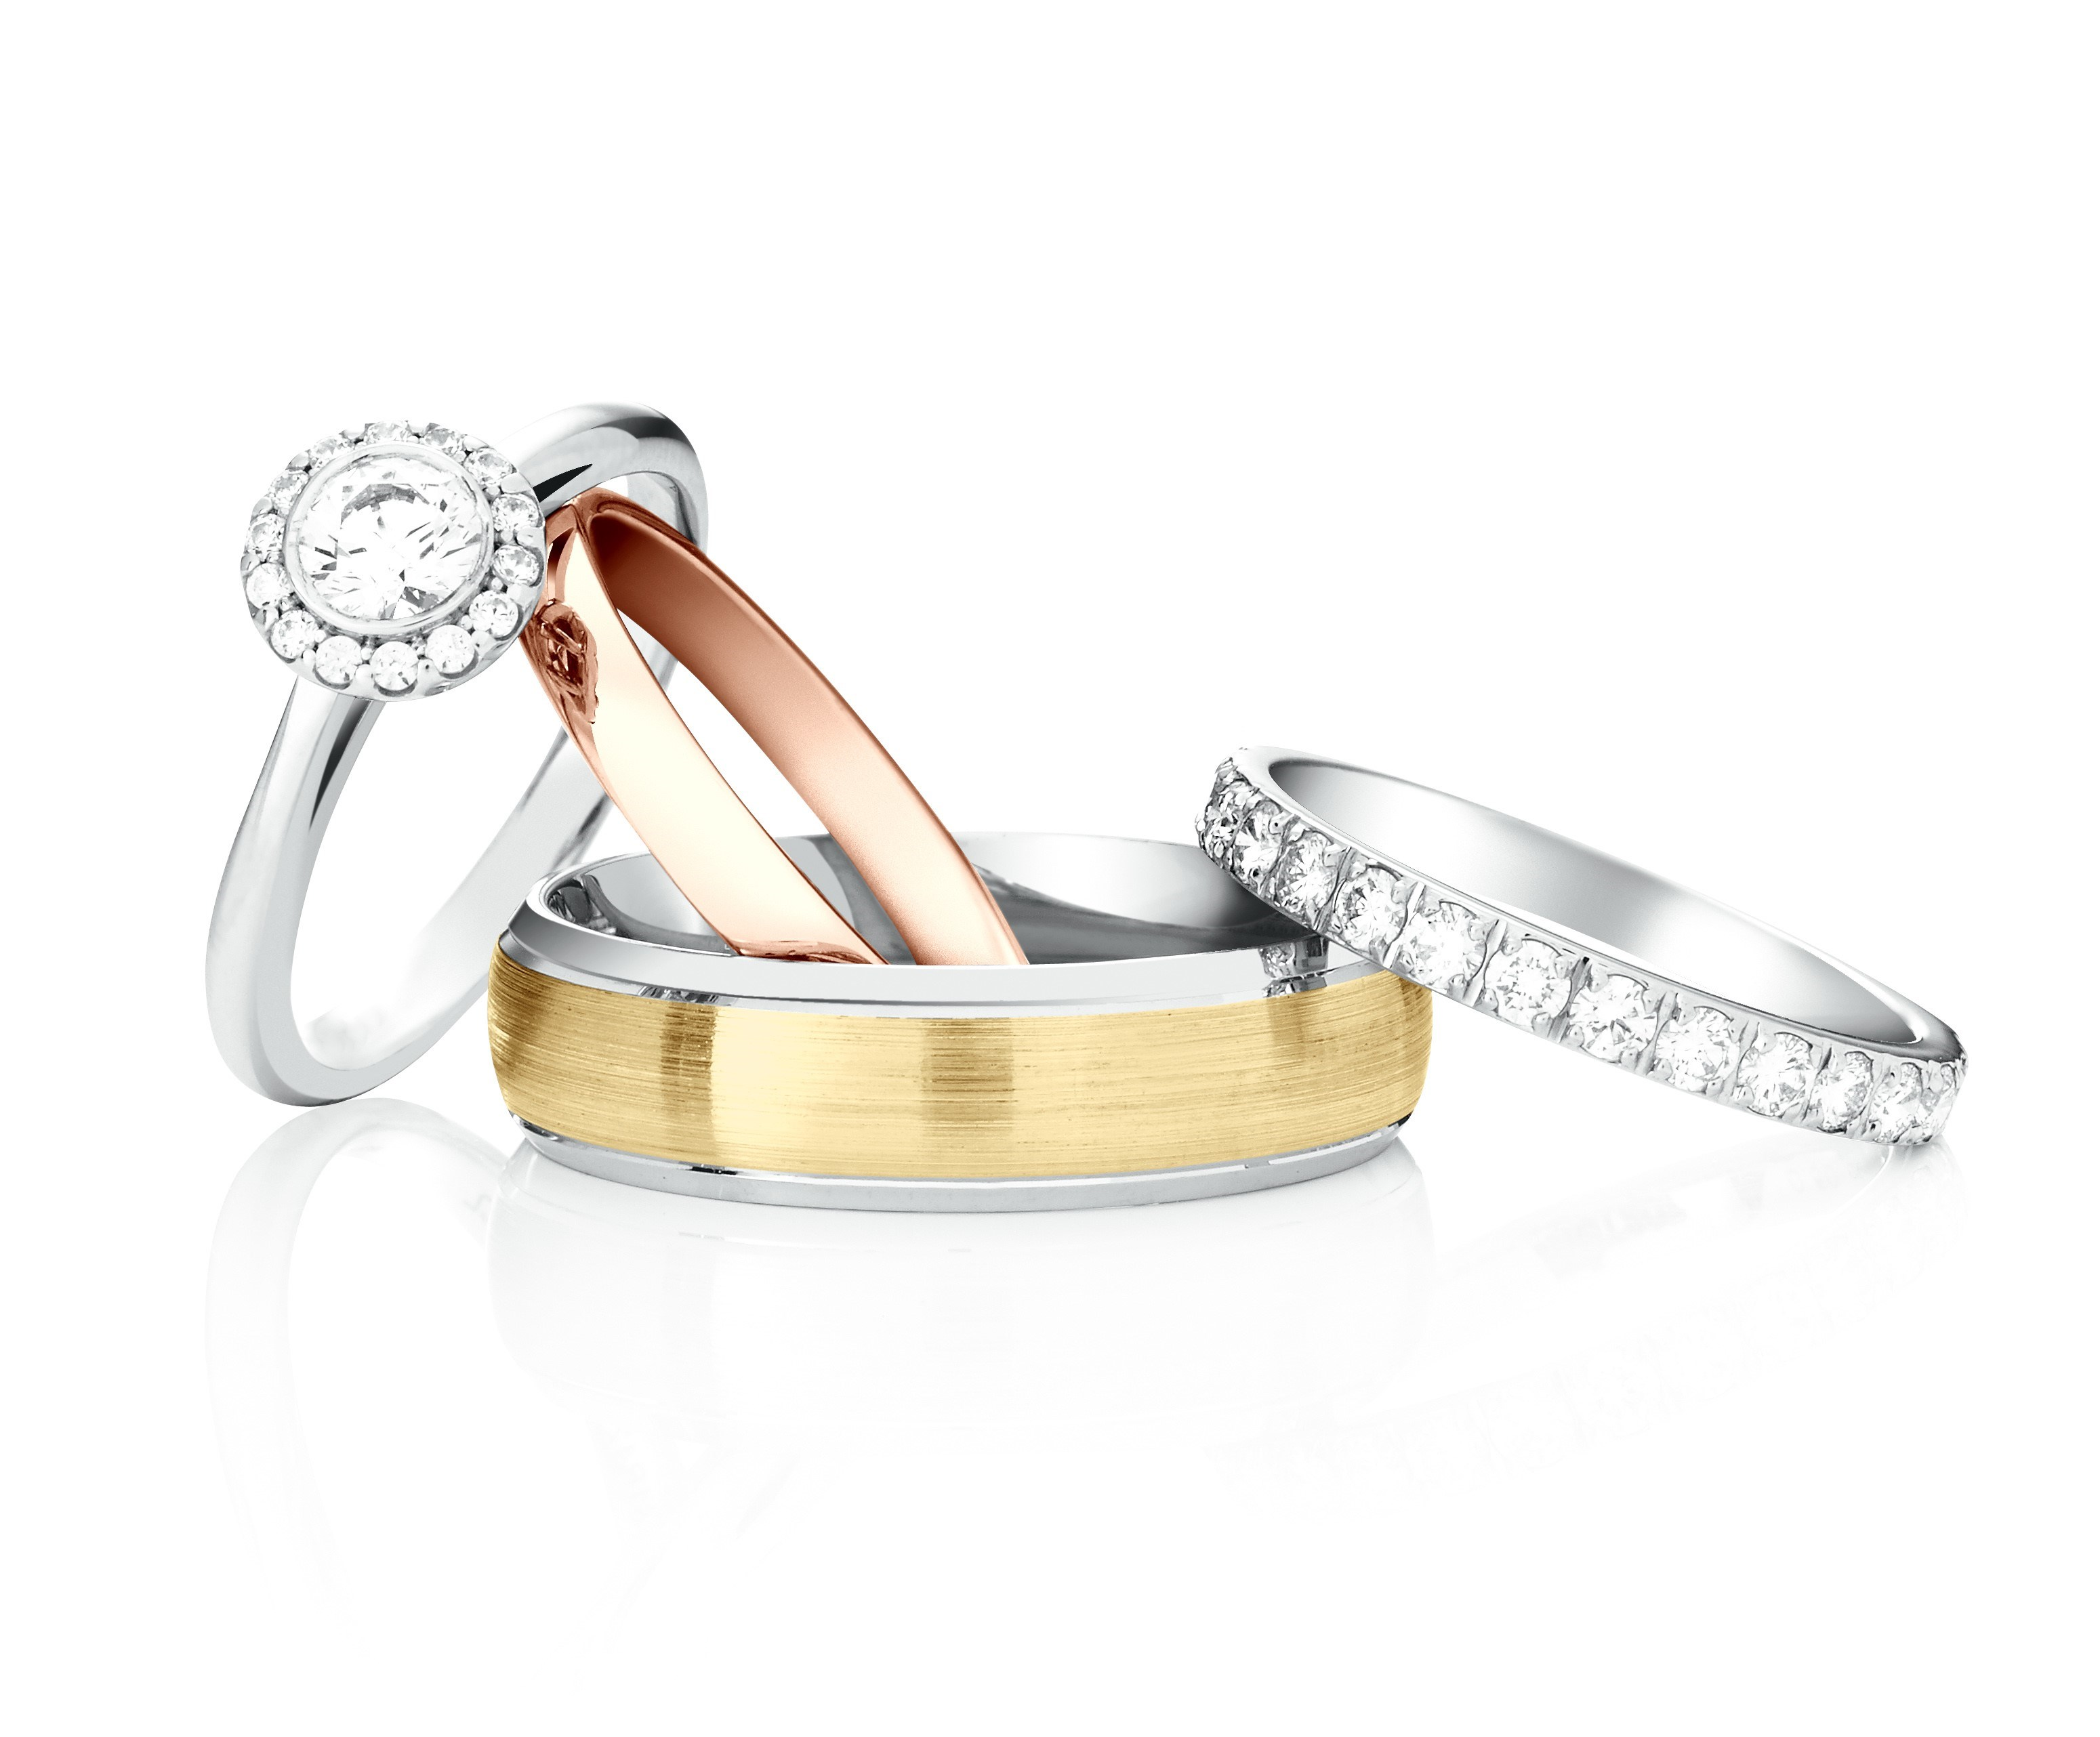 We can help you find the perfect engagement and wedding rings